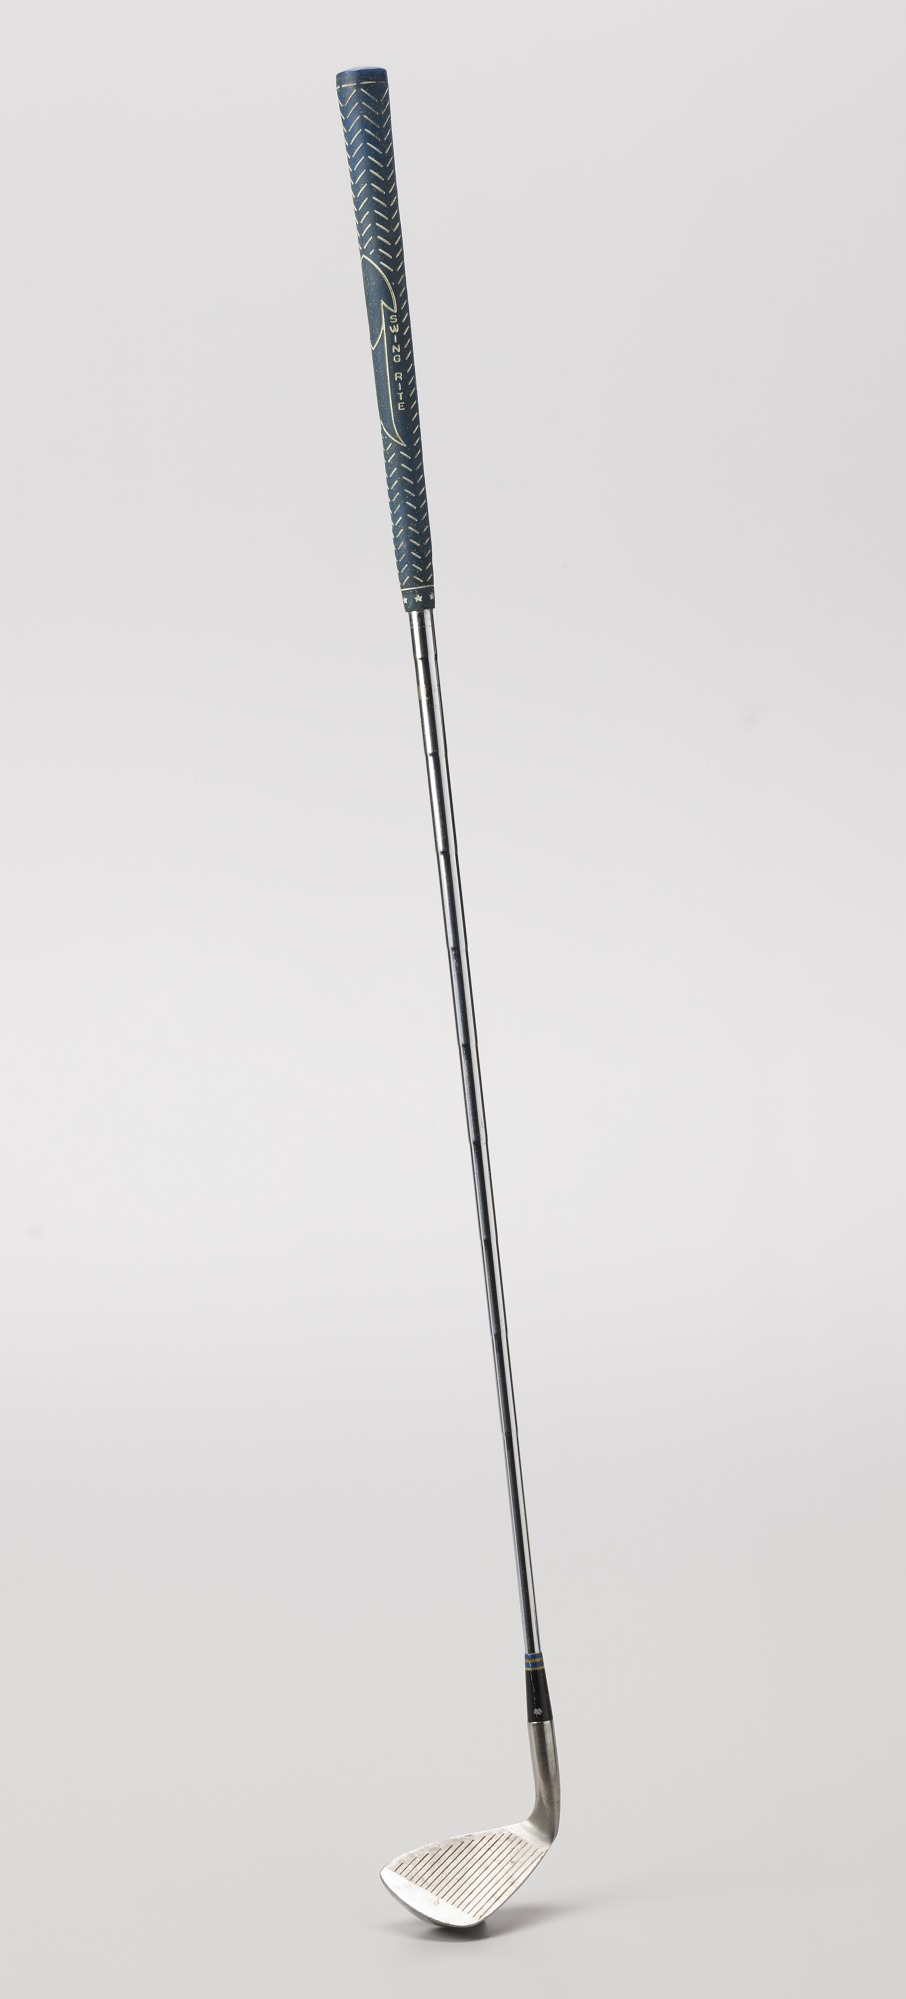 Wedge golf club used by Ethel Funches